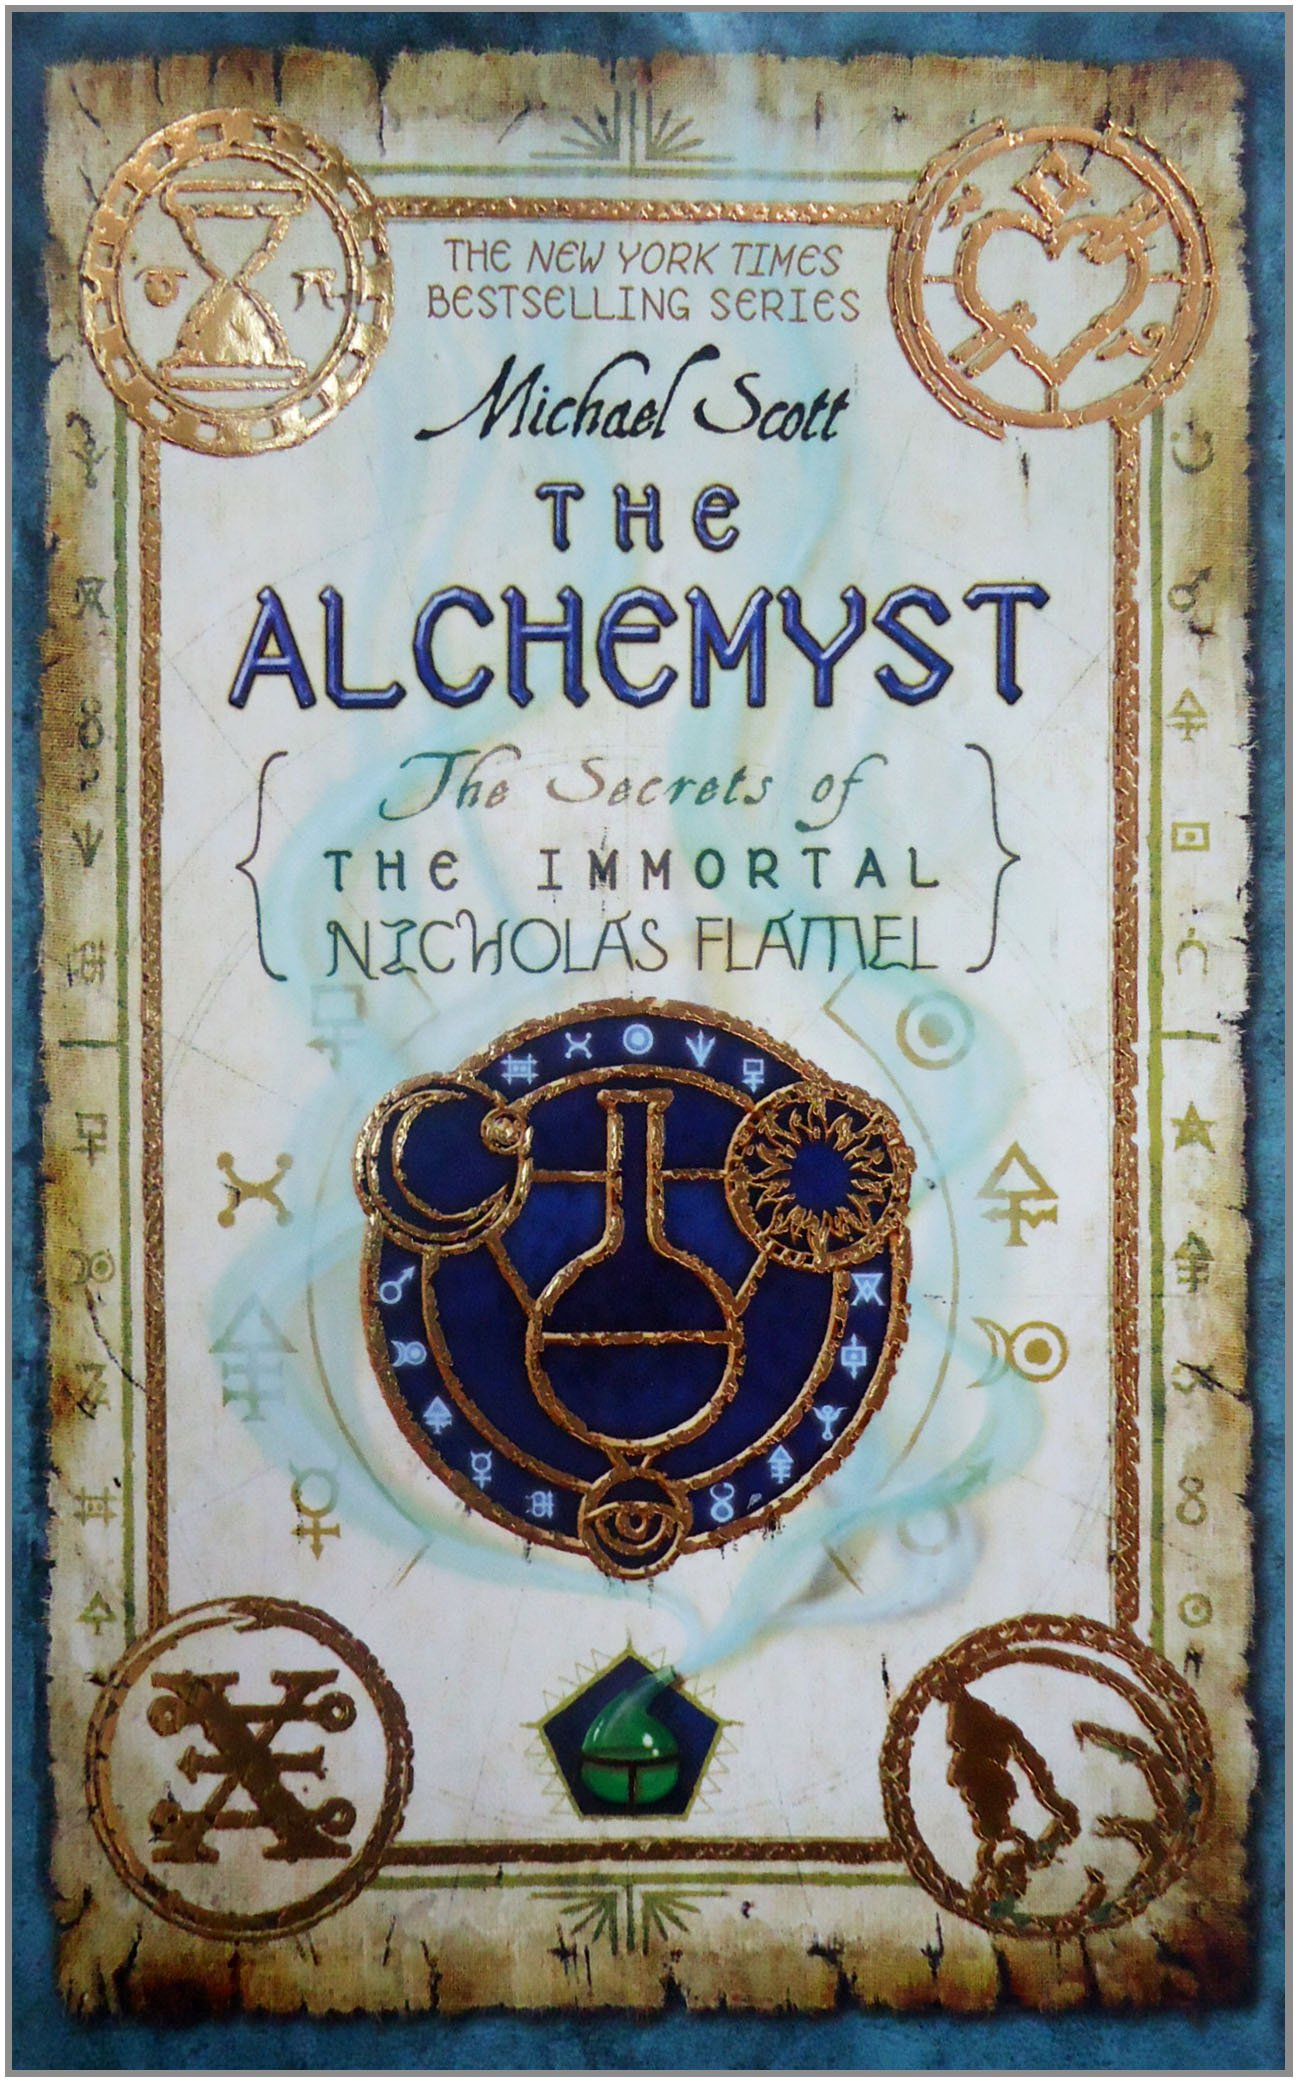 the alchemist novel summary the alchemist by paulo coelho animated  com the alchemyst the secrets of the immortal nicholas com the alchemyst the secrets of the